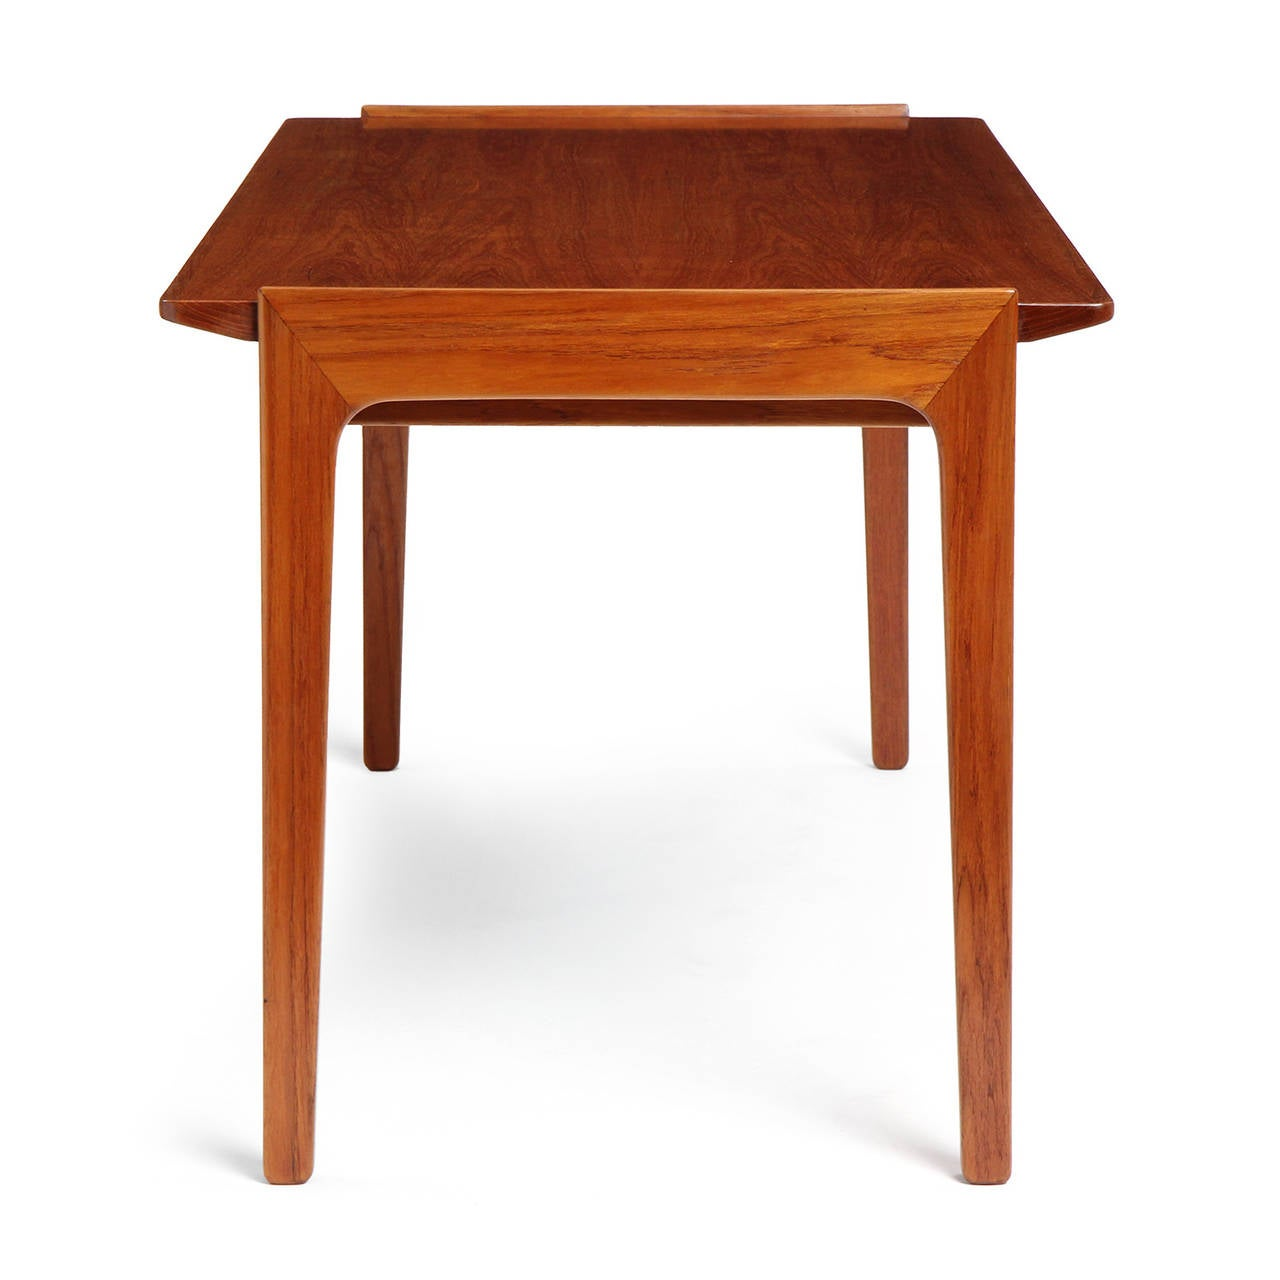 Mid-20th Century Teak Writing Desk by Tove & Edvard Kindt-Larsen For Sale